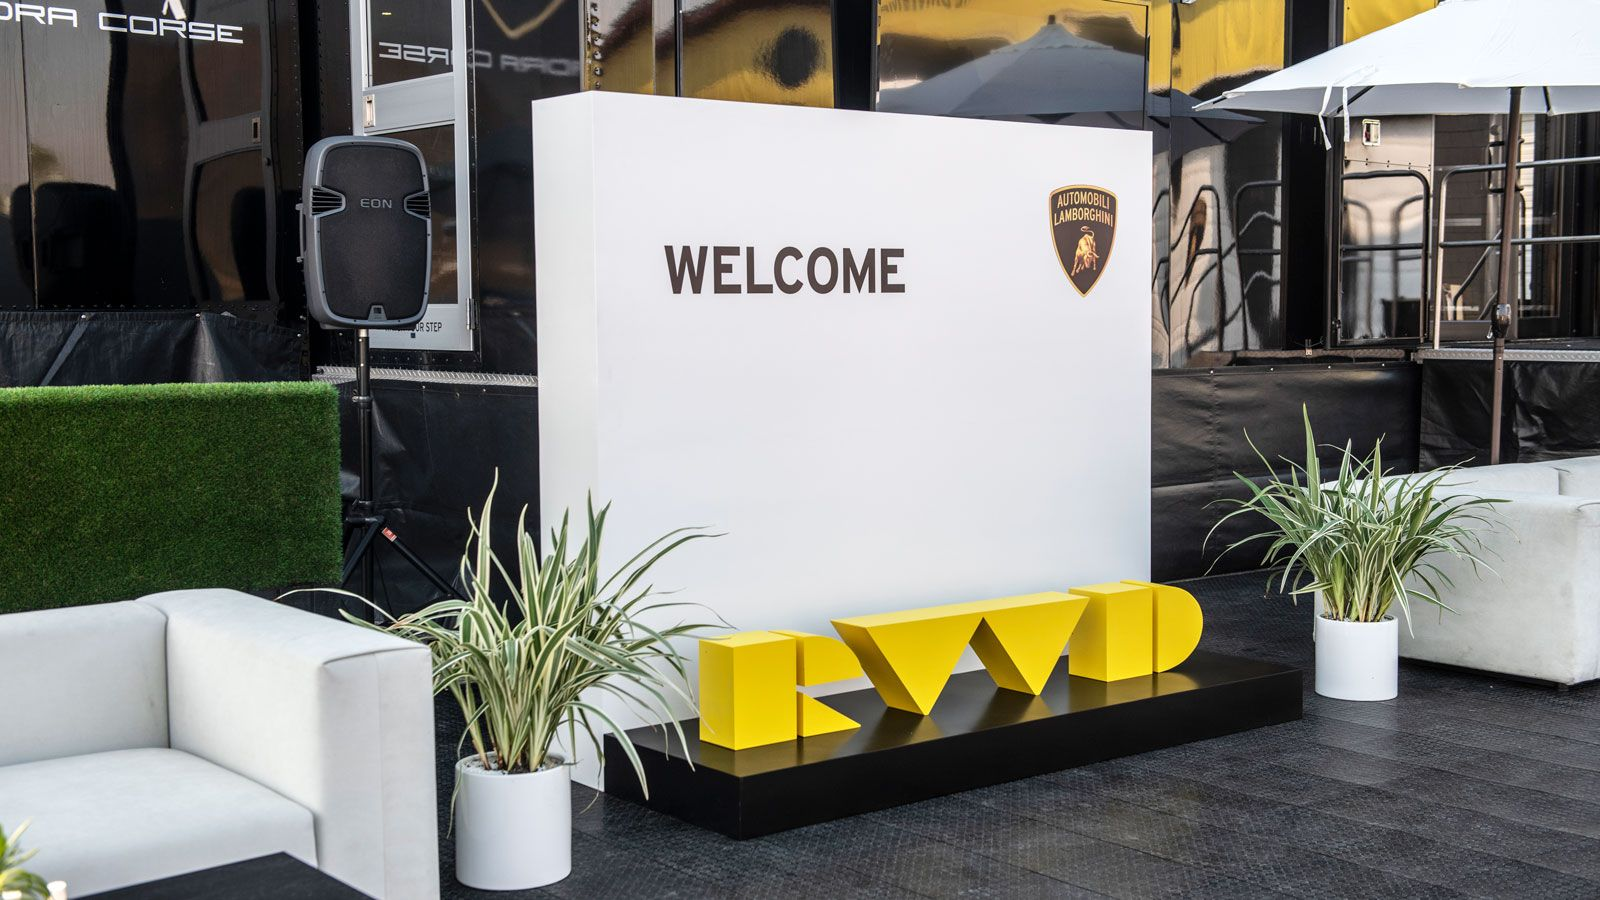 Lamborghini RWD 3d sign letters with a stand painted in yellow and black colors made of aluminum and wood for event branding